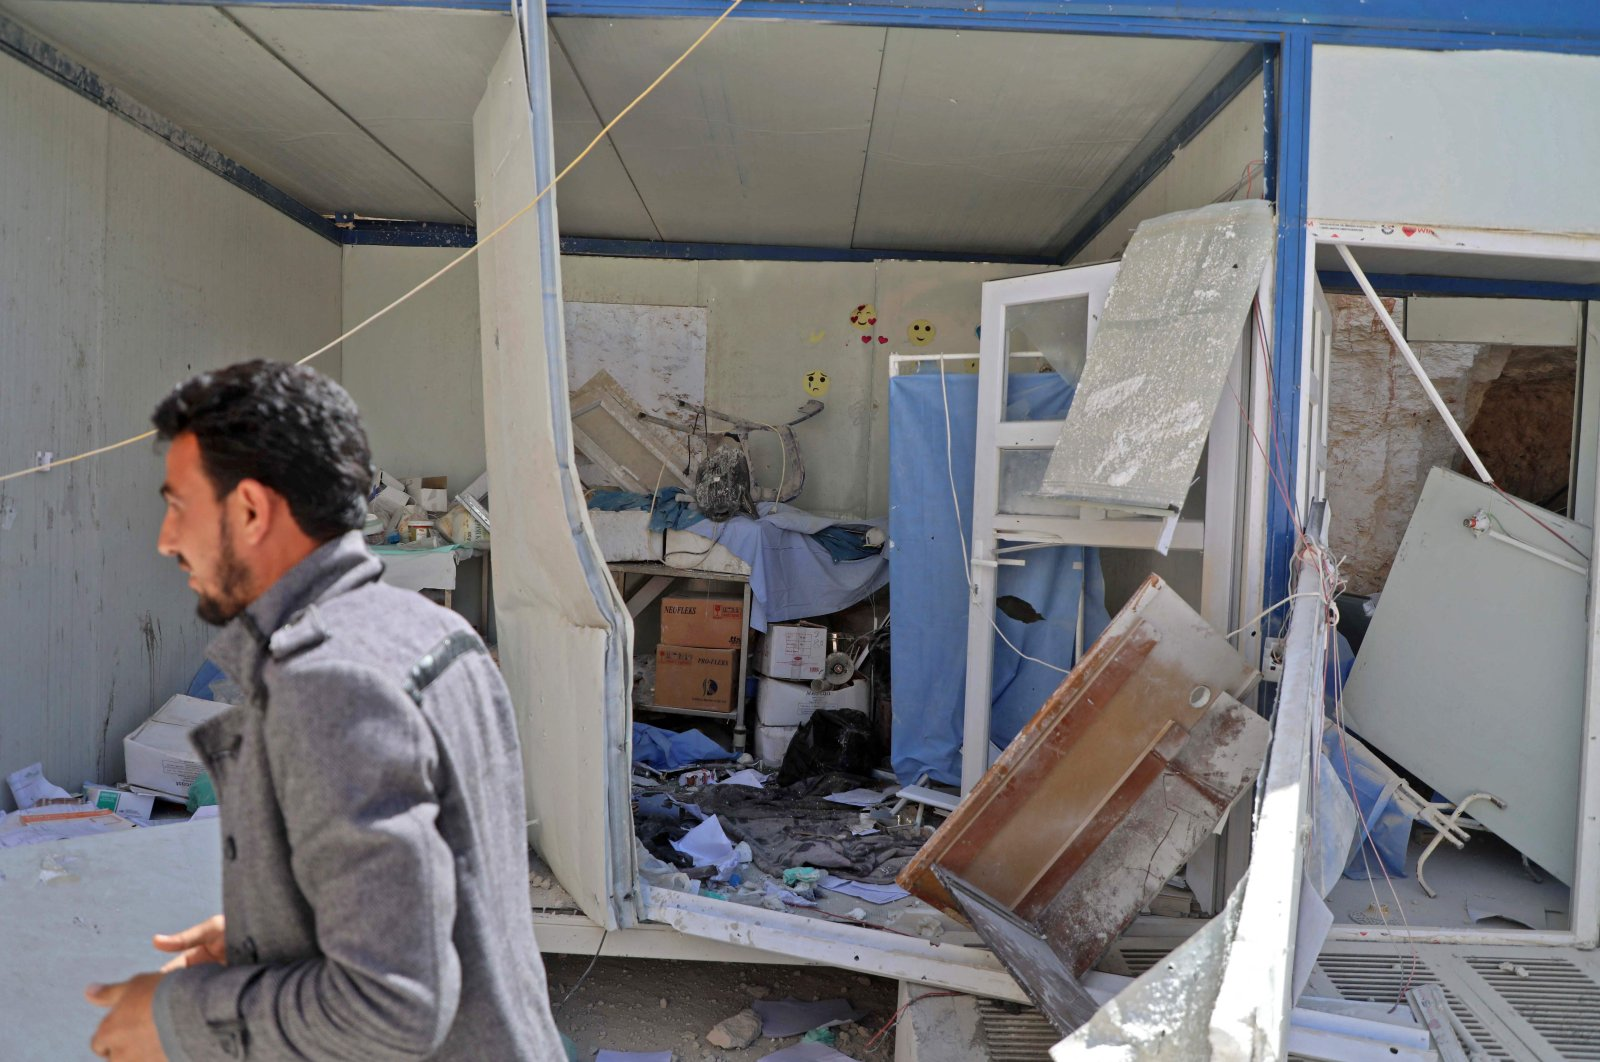 A man walks past a damaged room at the entrance of a field hospital in the village of Atareb in the northern Syrian province of Aleppo, Syria, on March 21, 2021. (AFP Photo)